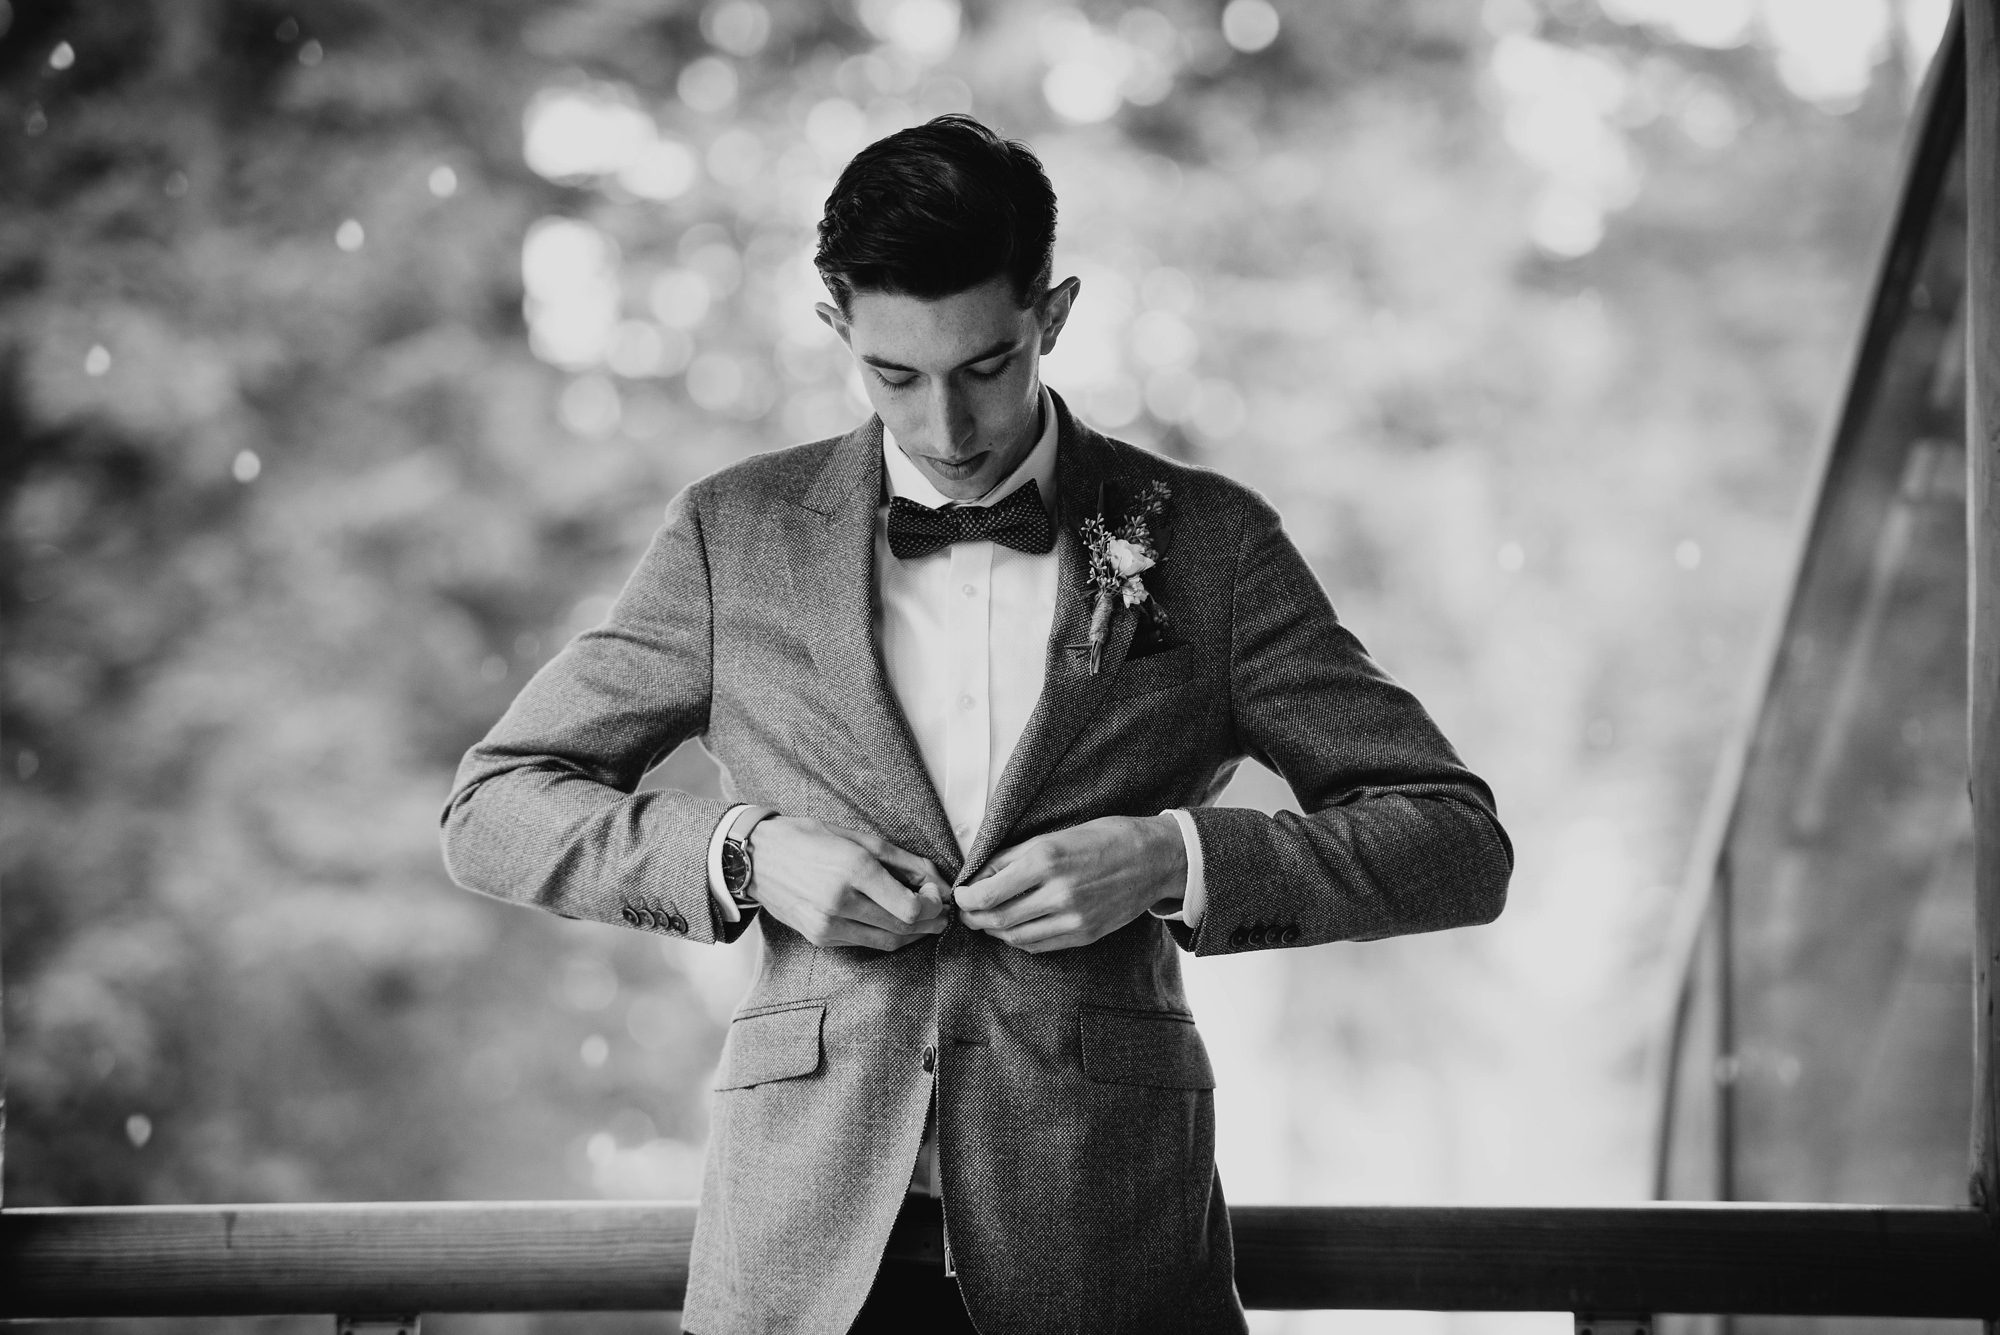 groom getting ready in moody mountain wedding captured at moraine lake lodge and Lake Louise in Banff Canada